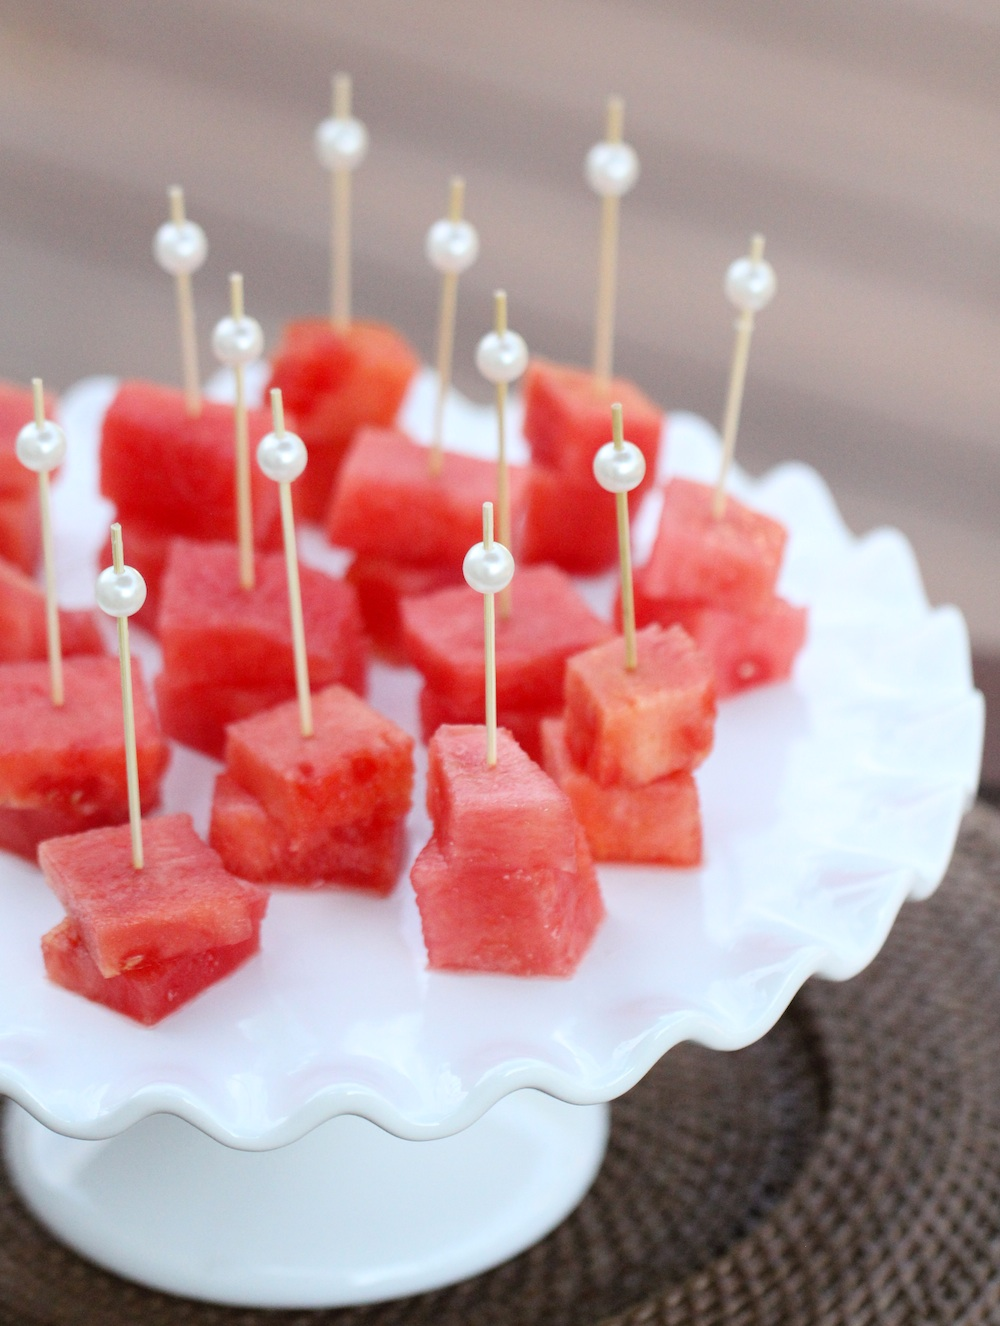 Mini Watermelon Skewers with Pearl Topped Toothpicks : treat your guests to a fancy presentation